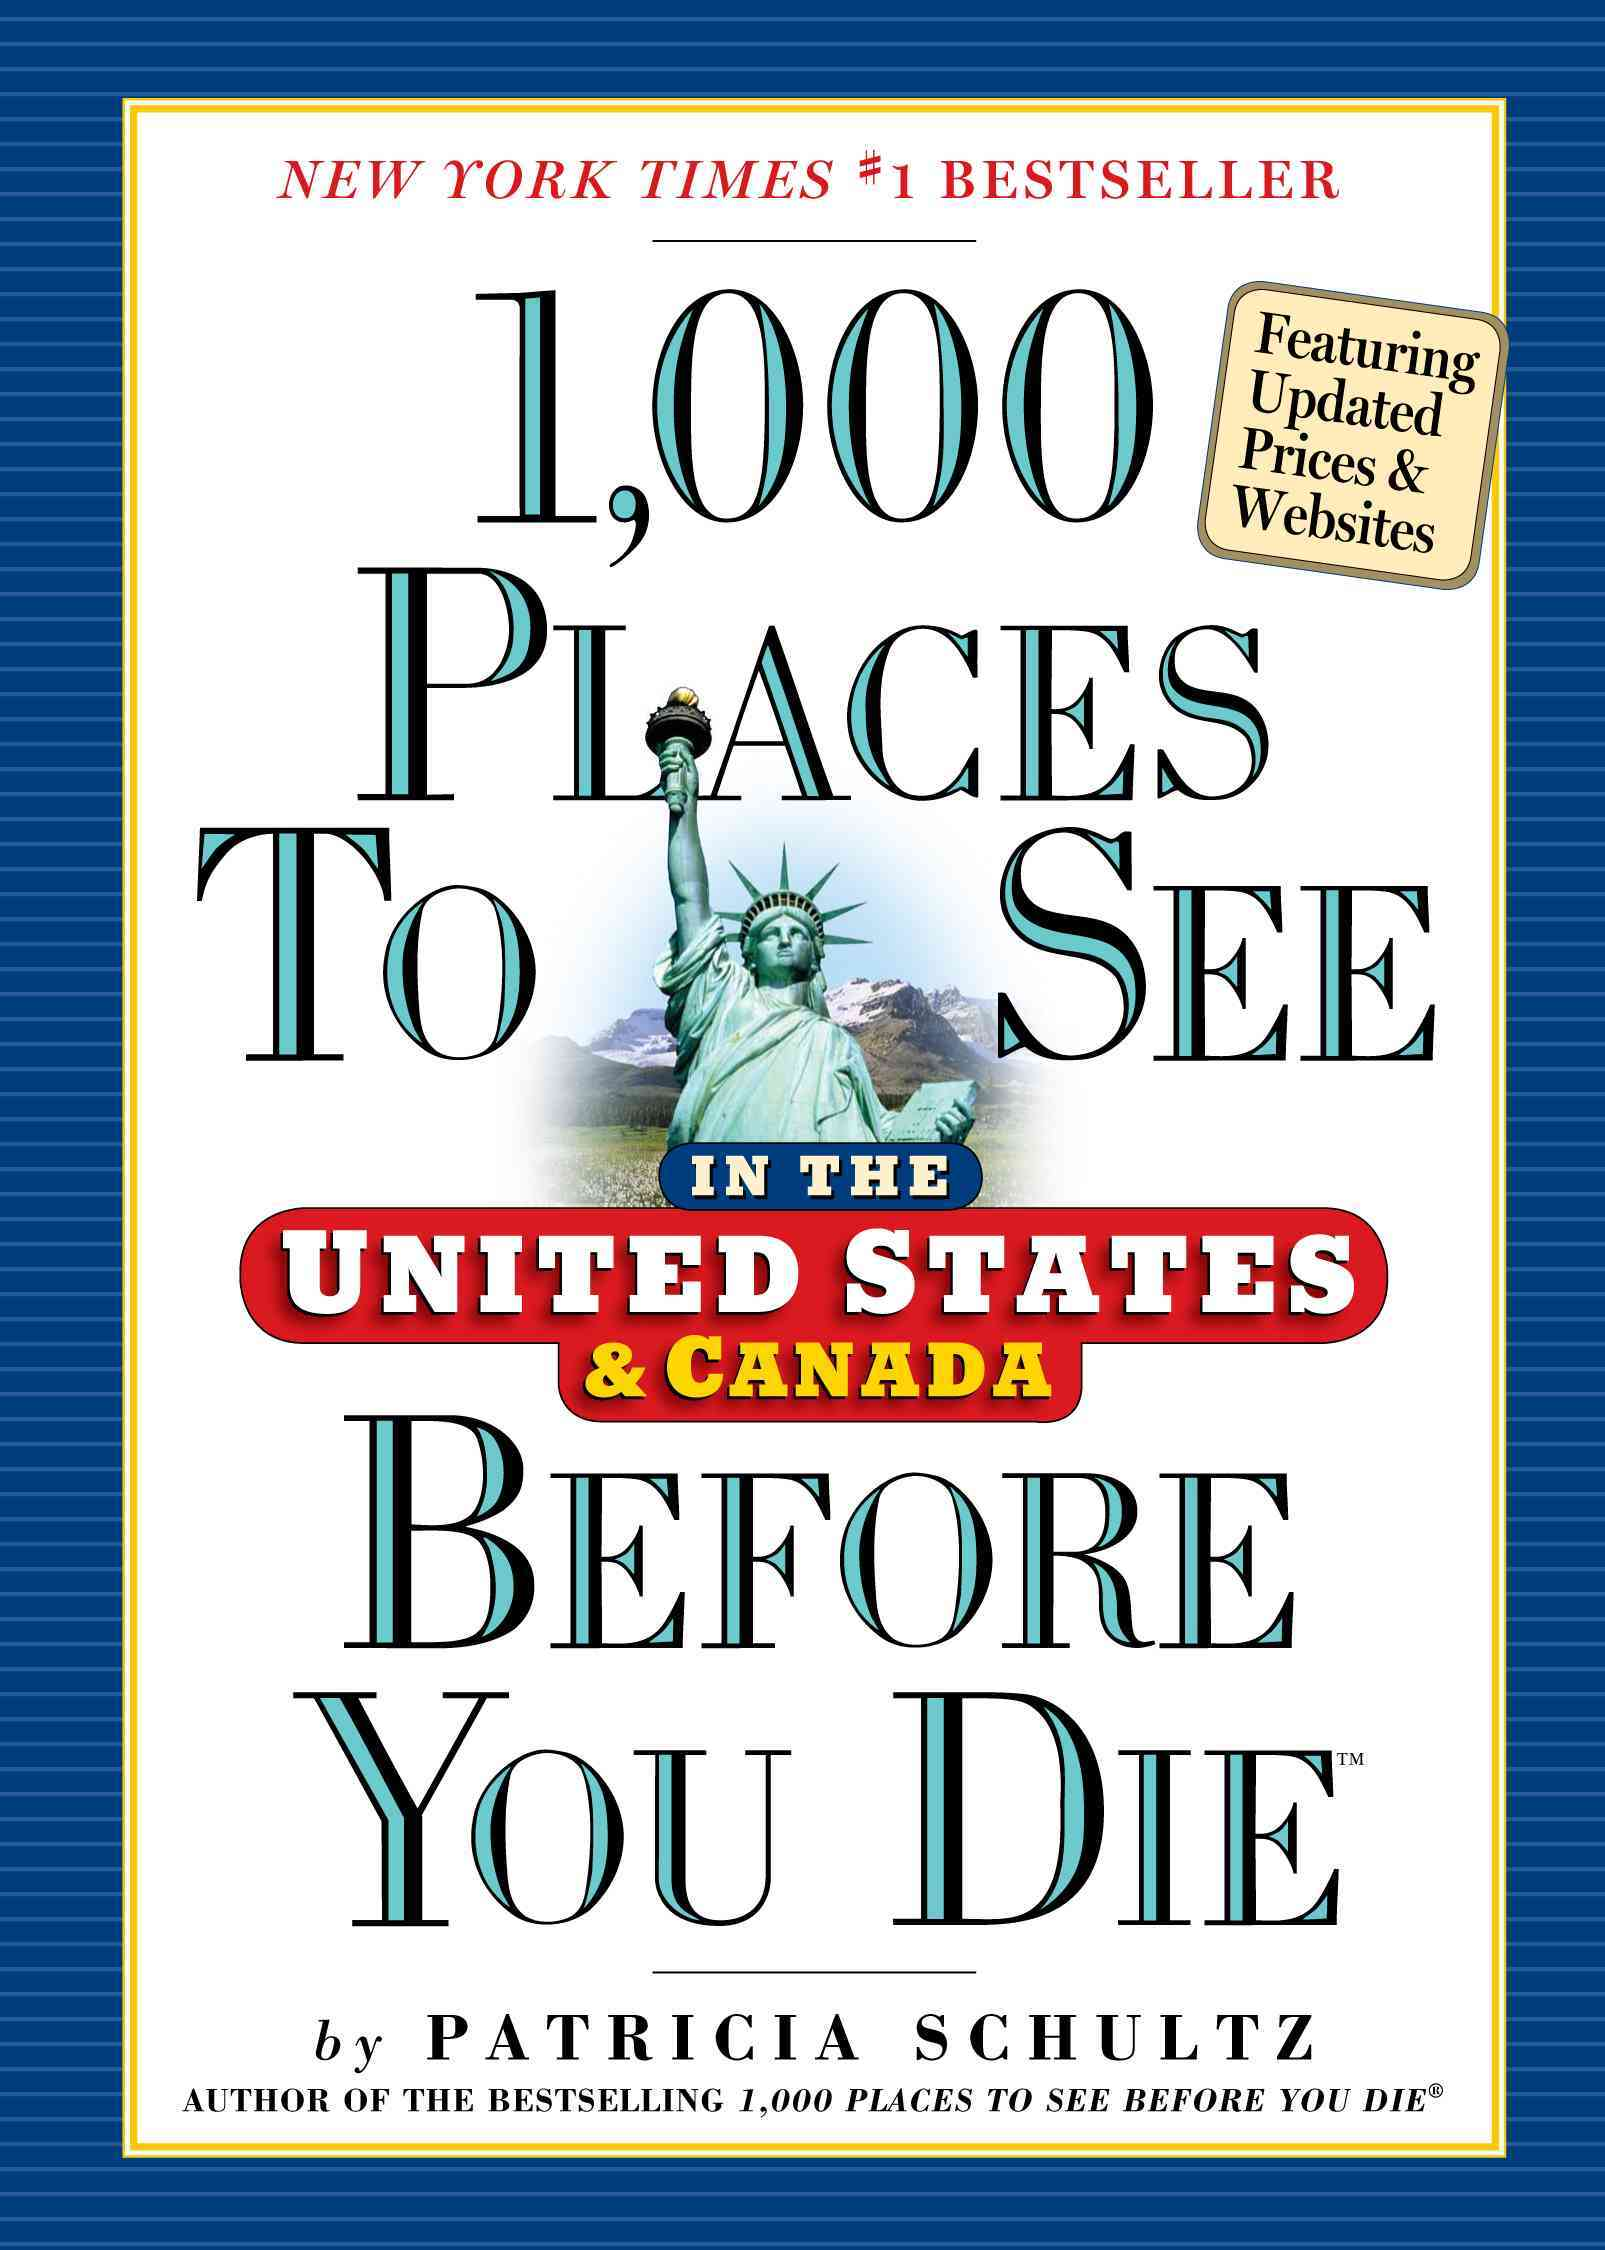 1,000 Places to See in the United States & Canada Before You Die (Paperback)